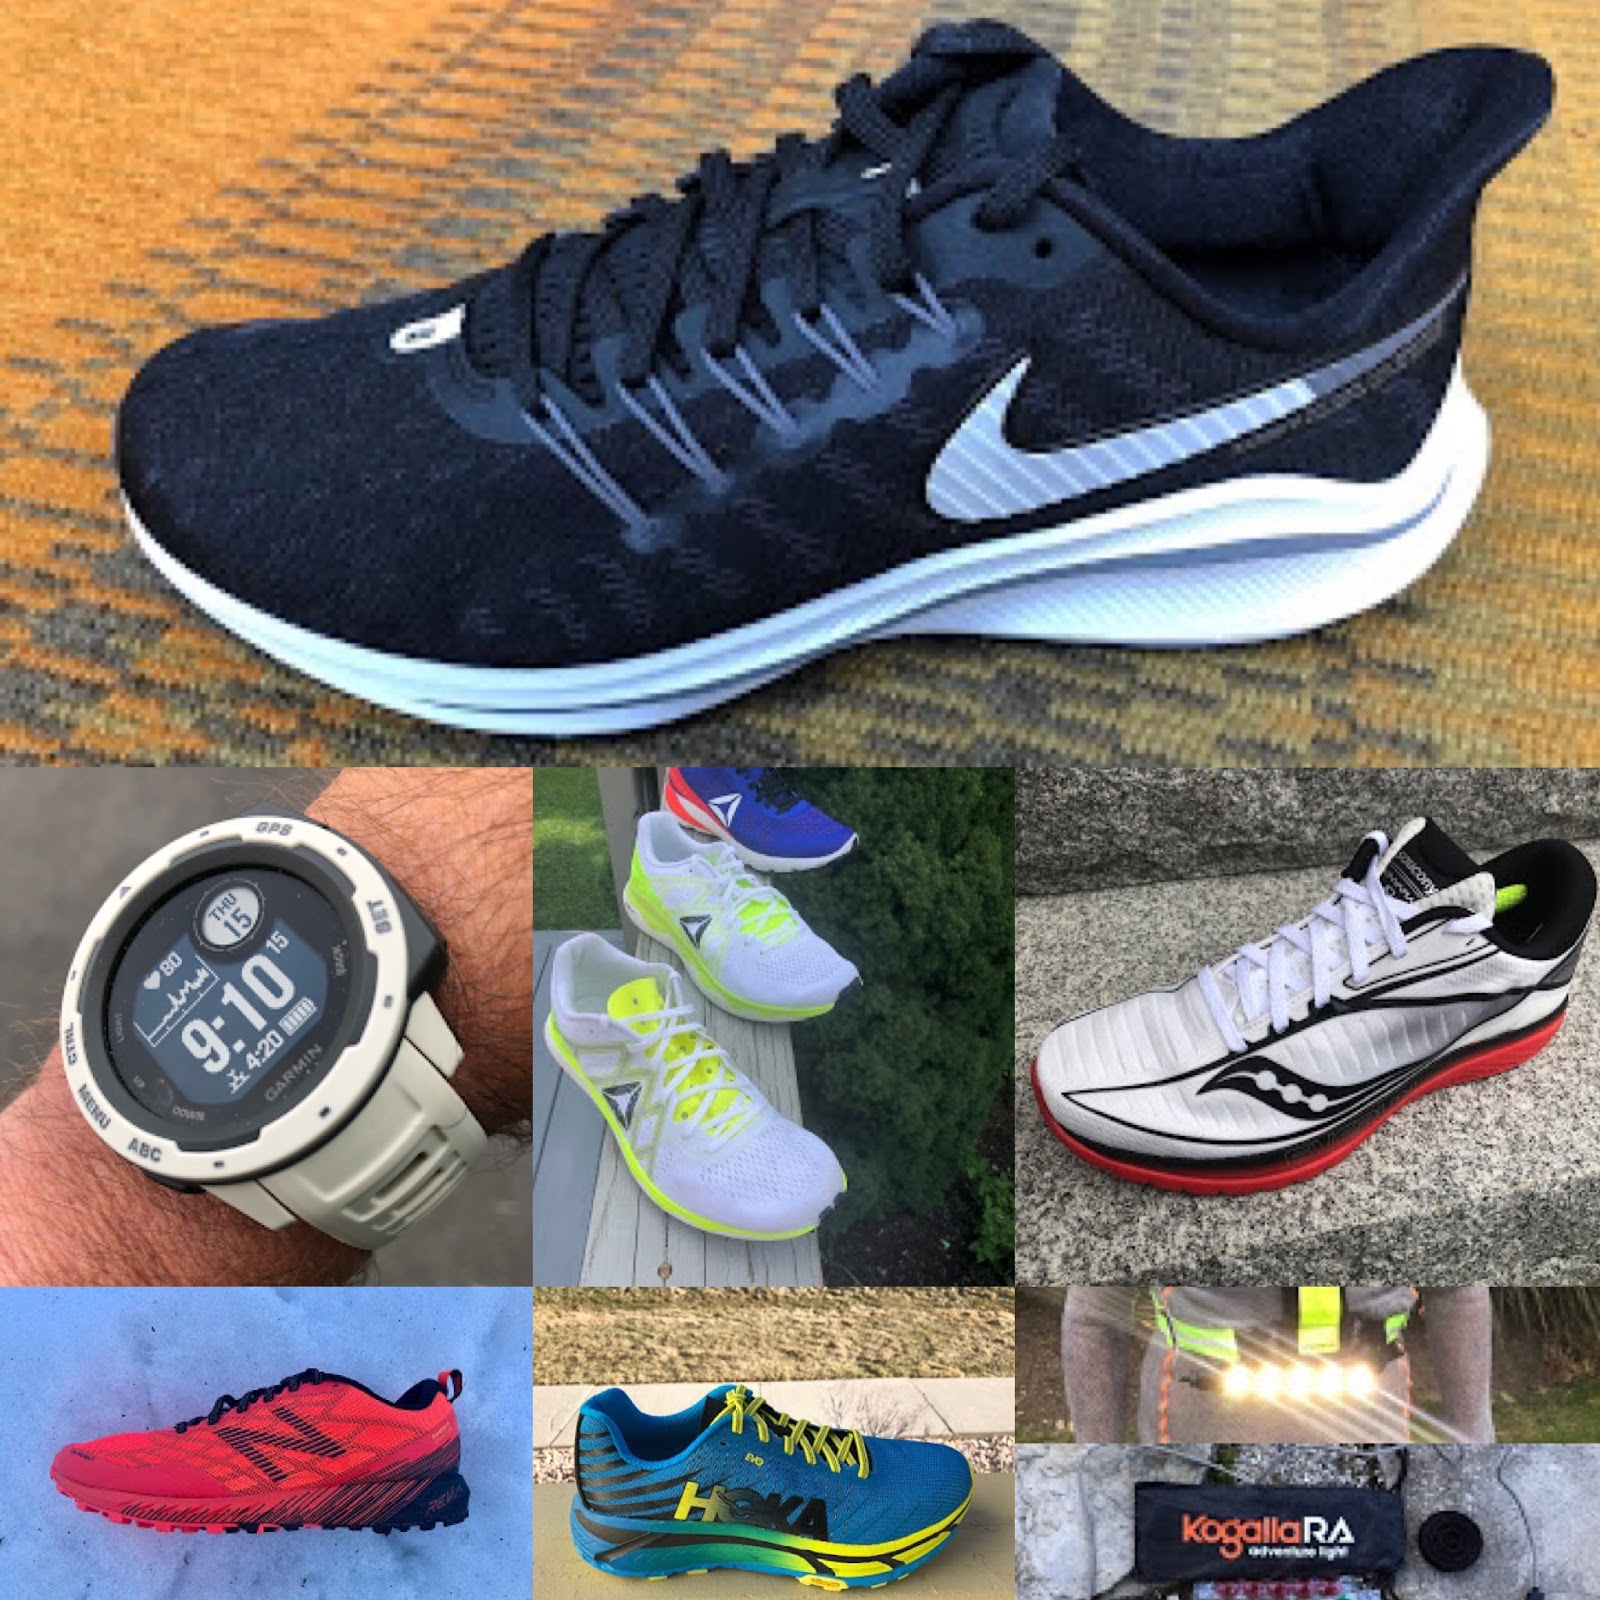 109c1134dc414 Road Trail Run  Road Trail Run Year in Review   Sam s Running Shoes ...